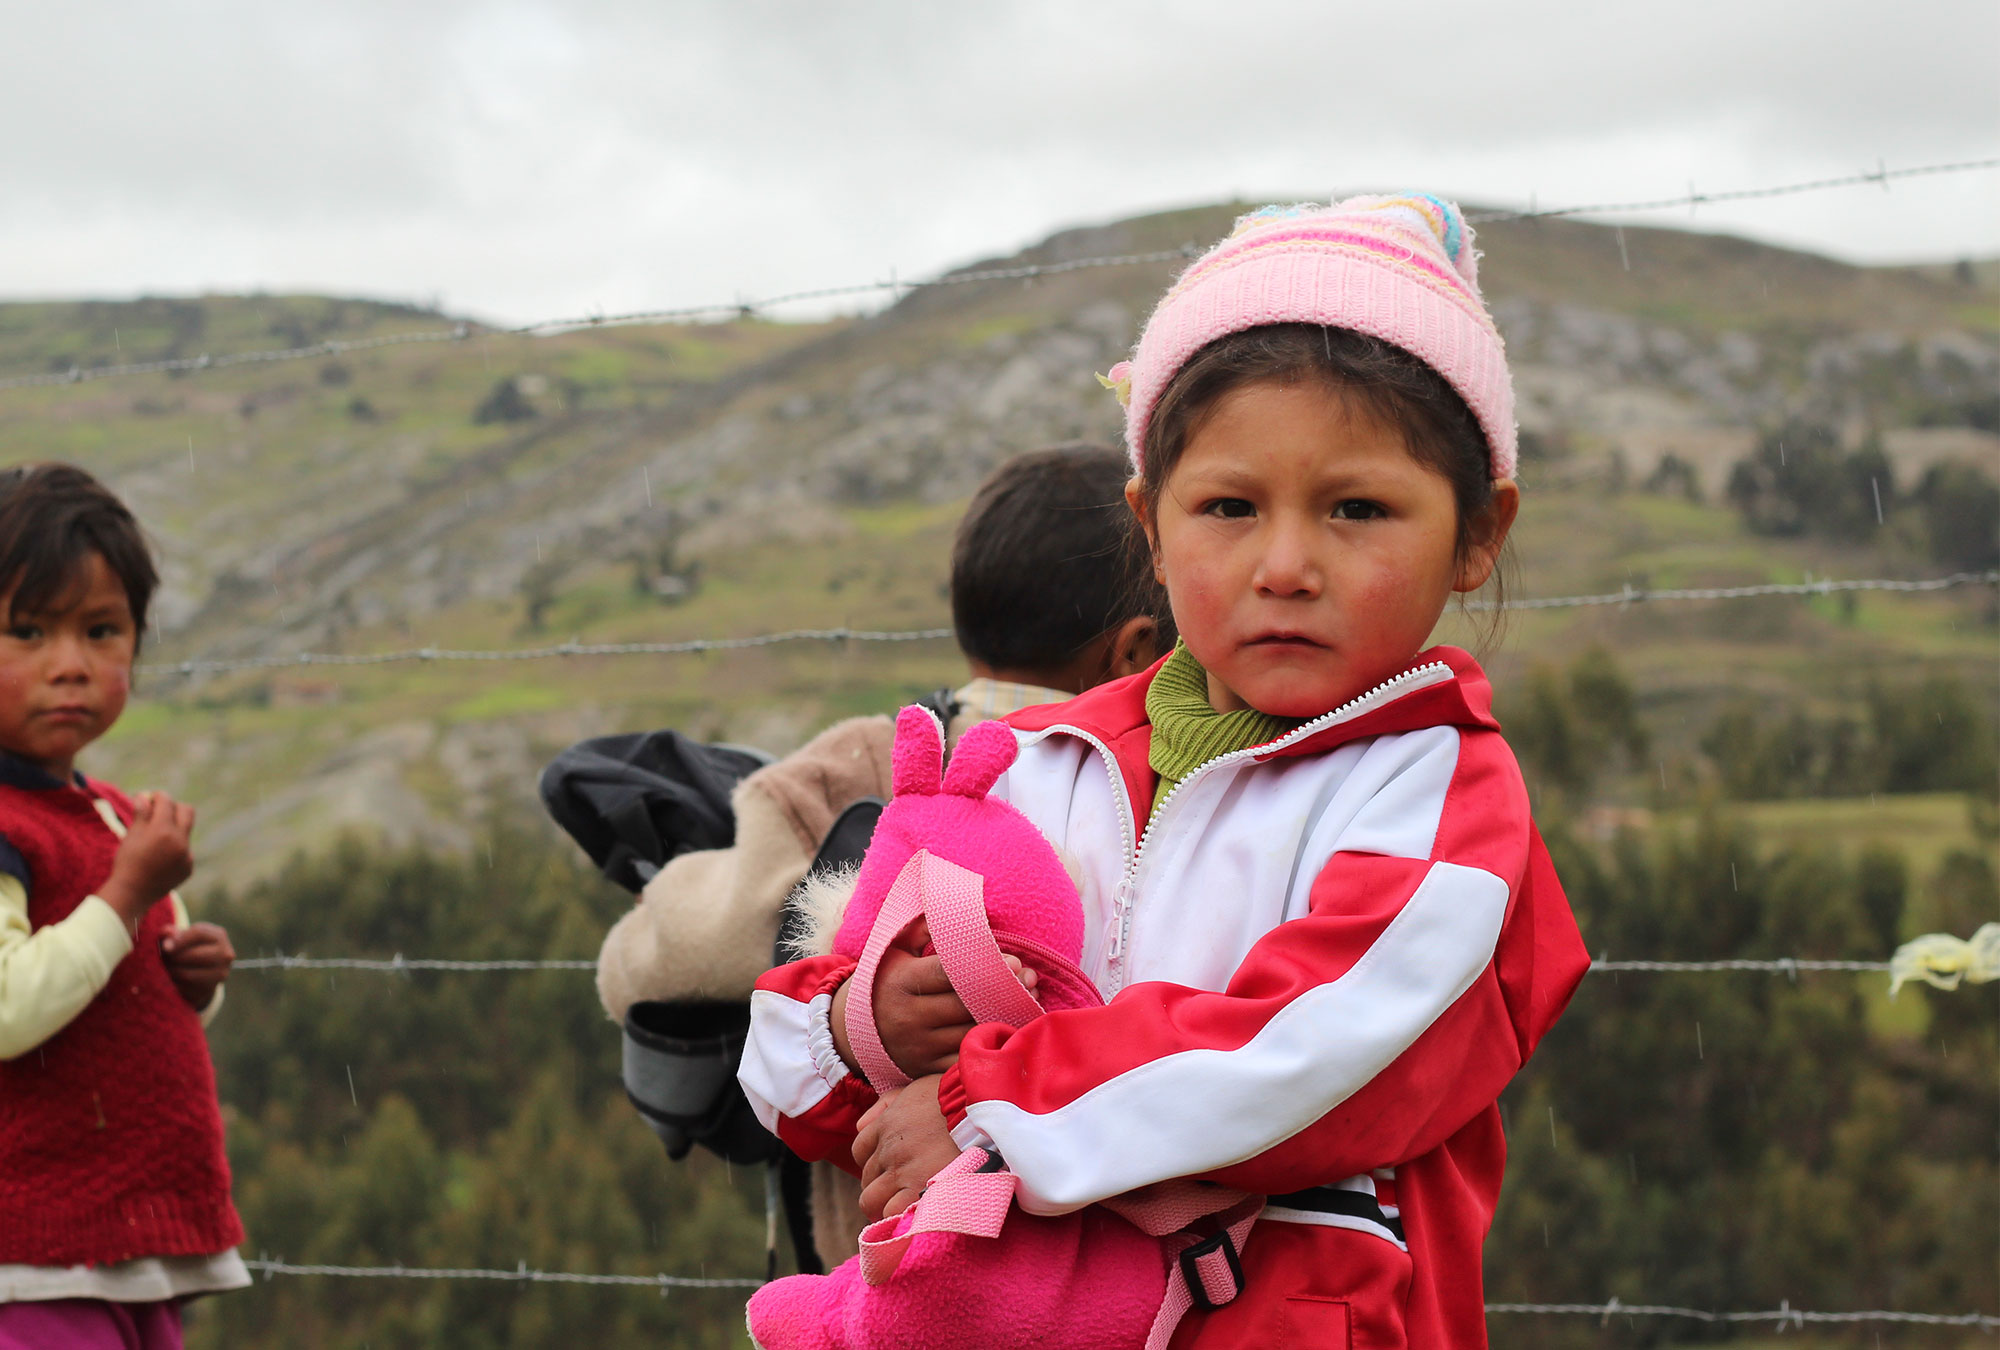 Young girl in pink jacket and hat outside in rural Peru